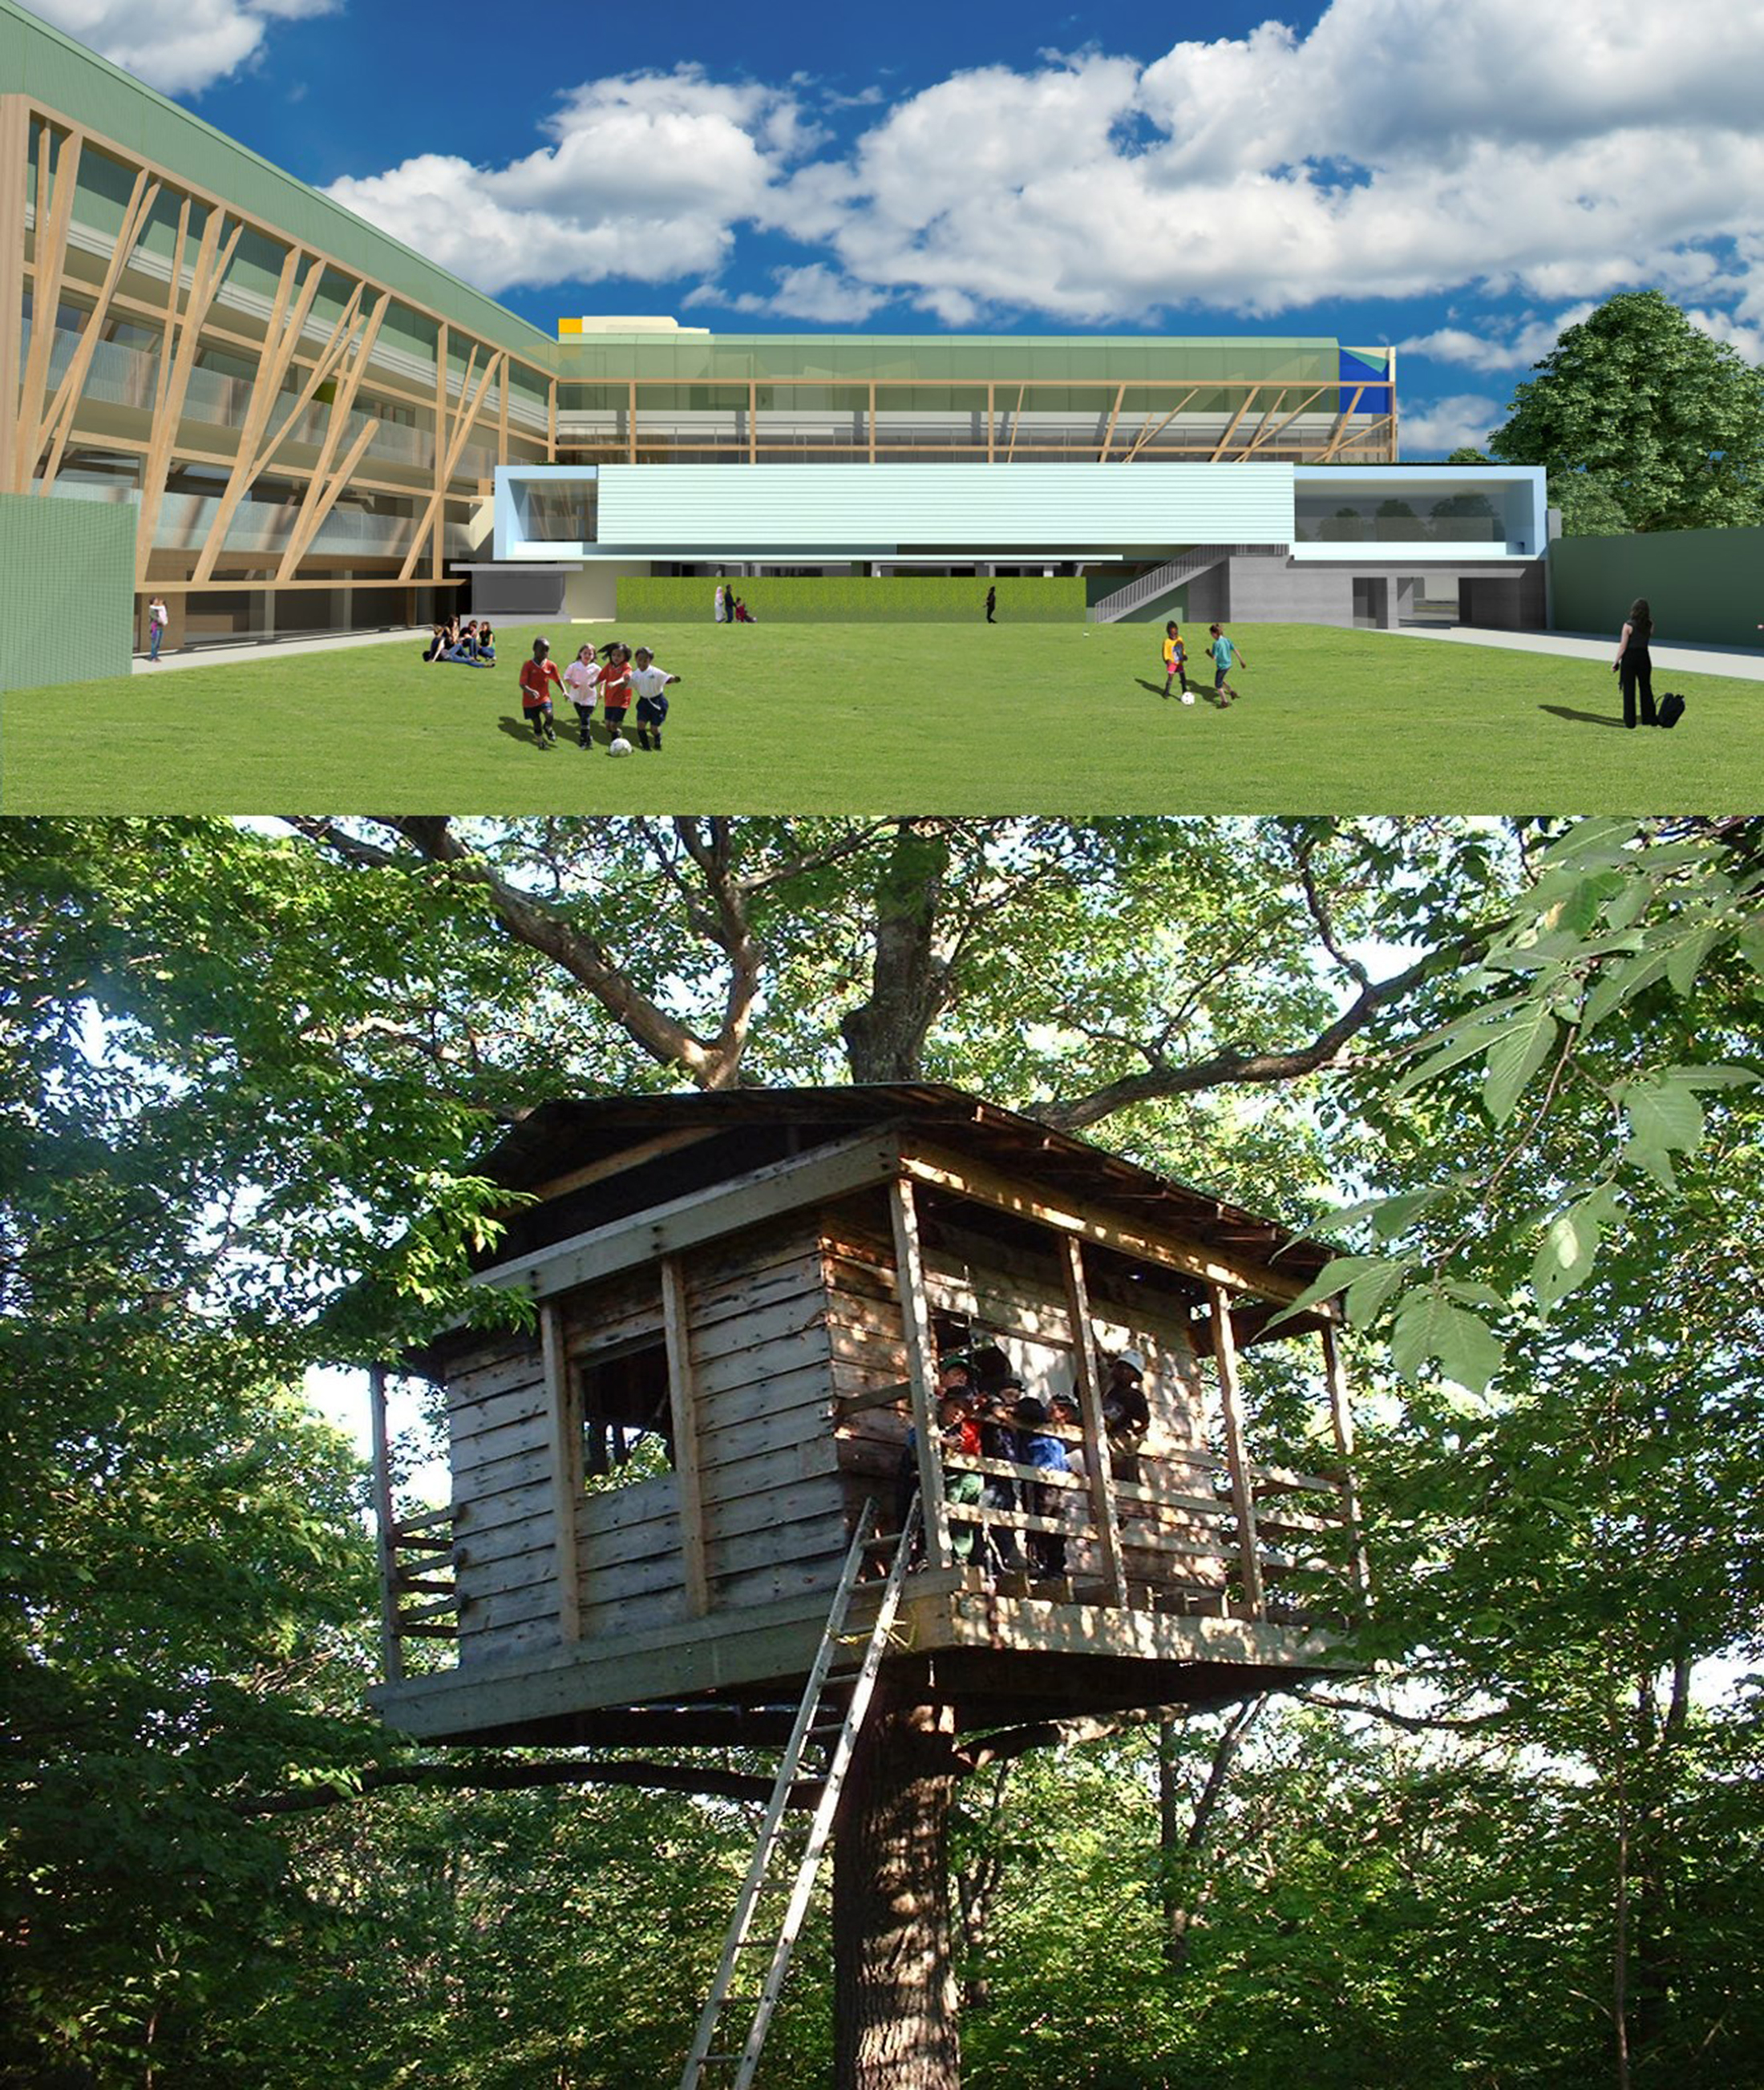 The play field and facing elevations of the new CEE campus buildings evoke in part the look and feel of a tree house.